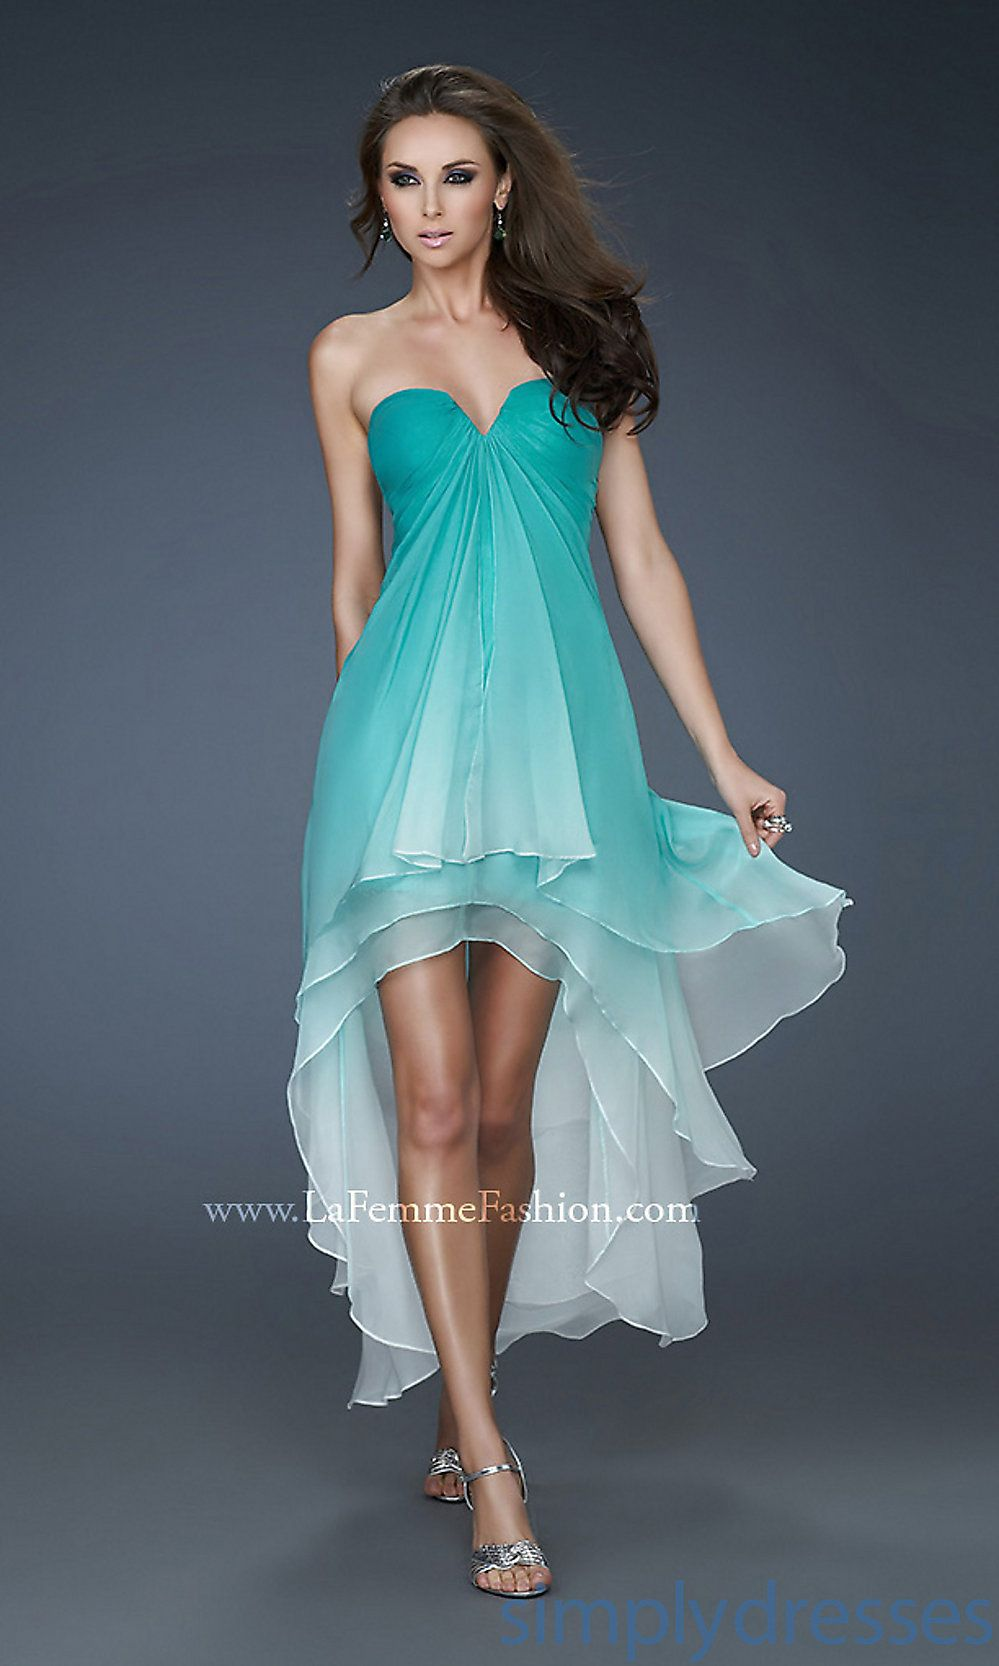 Strapless Ombre High Low Dress, High Low Prom Dress - Simply Dresses ...